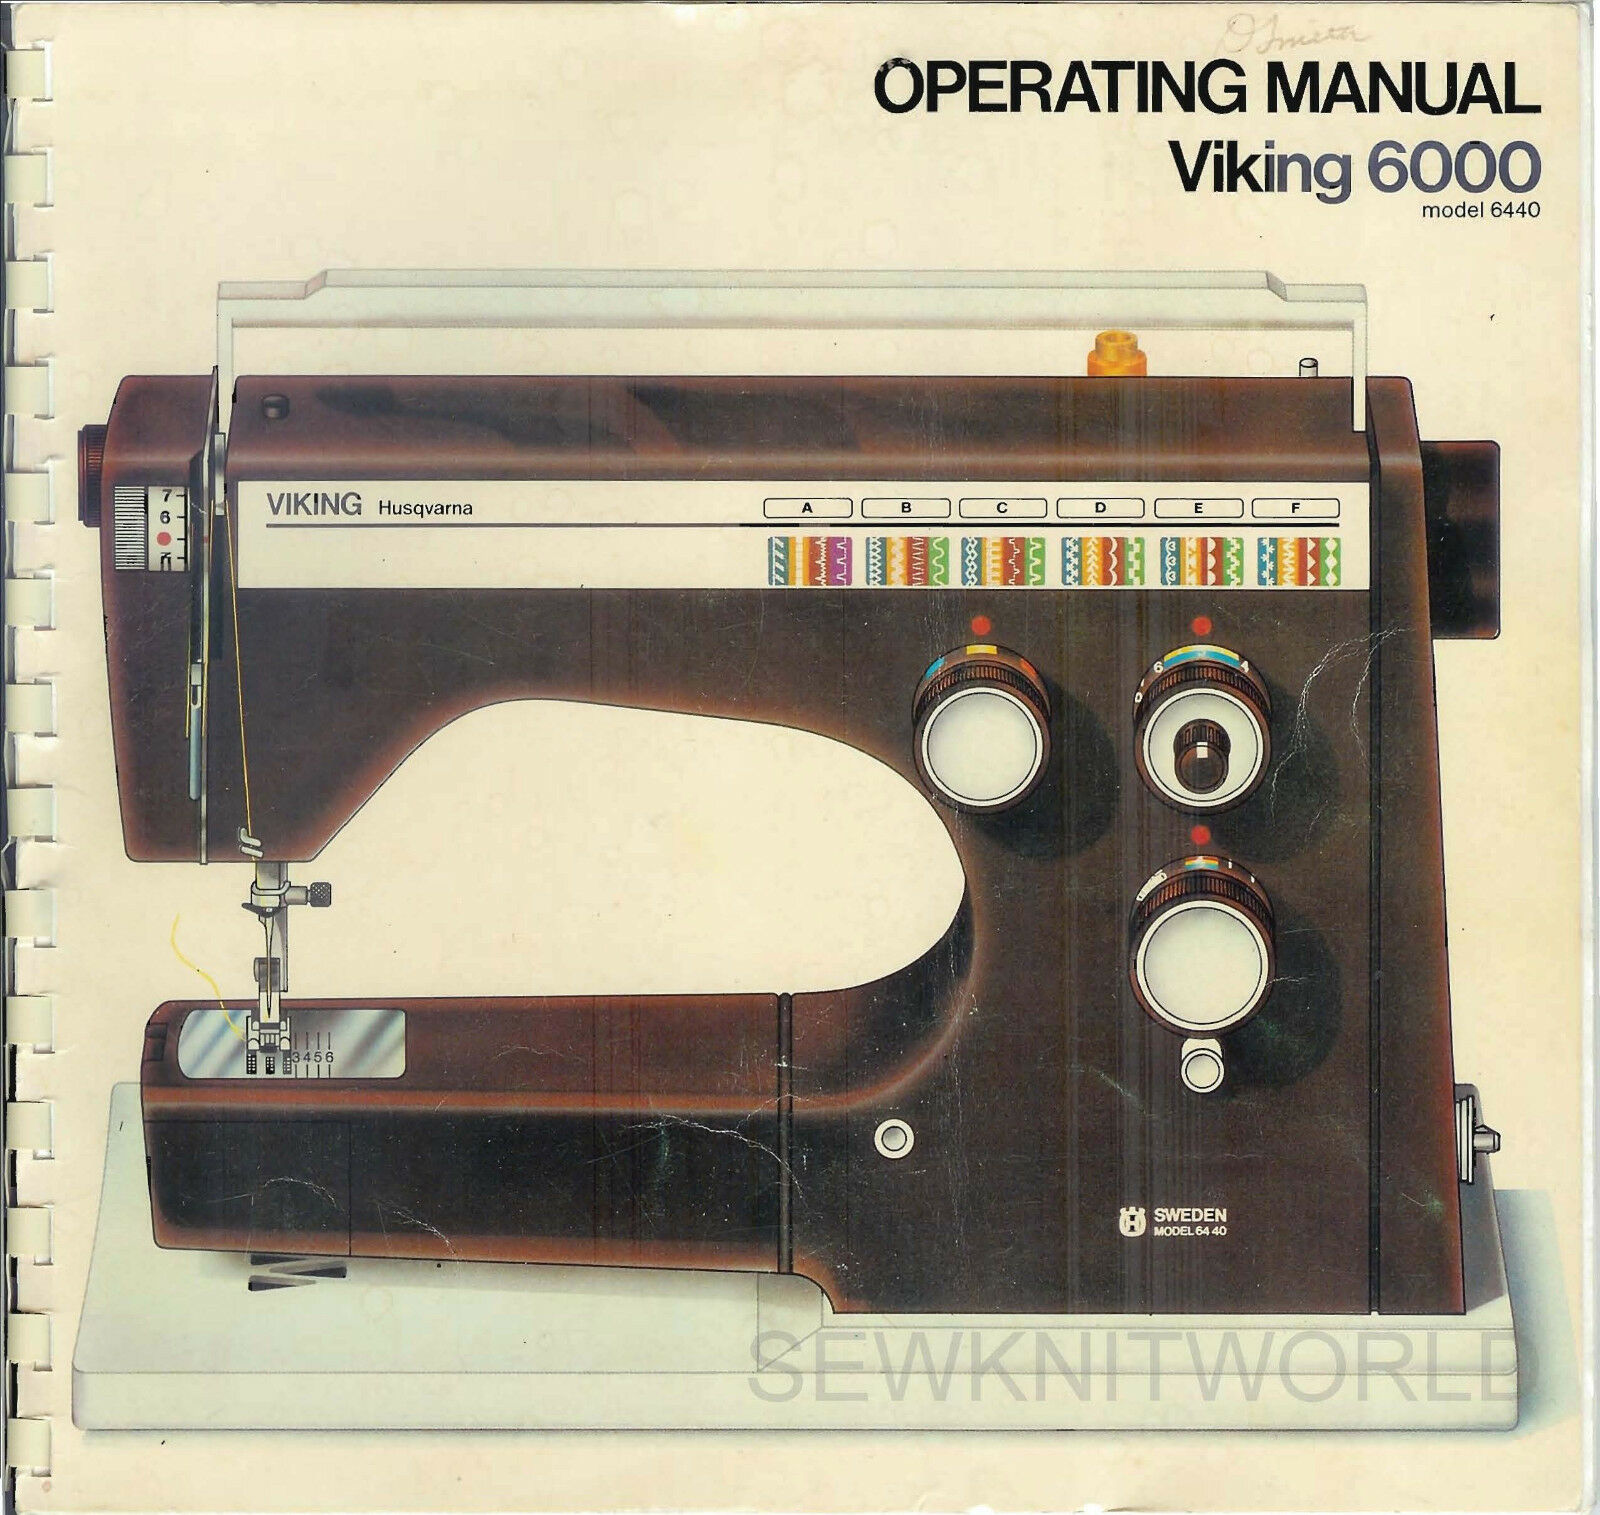 Viking Husqvarna 6440 Sewing Machine Manuals Cd / Pdf 1 of 1FREE Shipping  ...